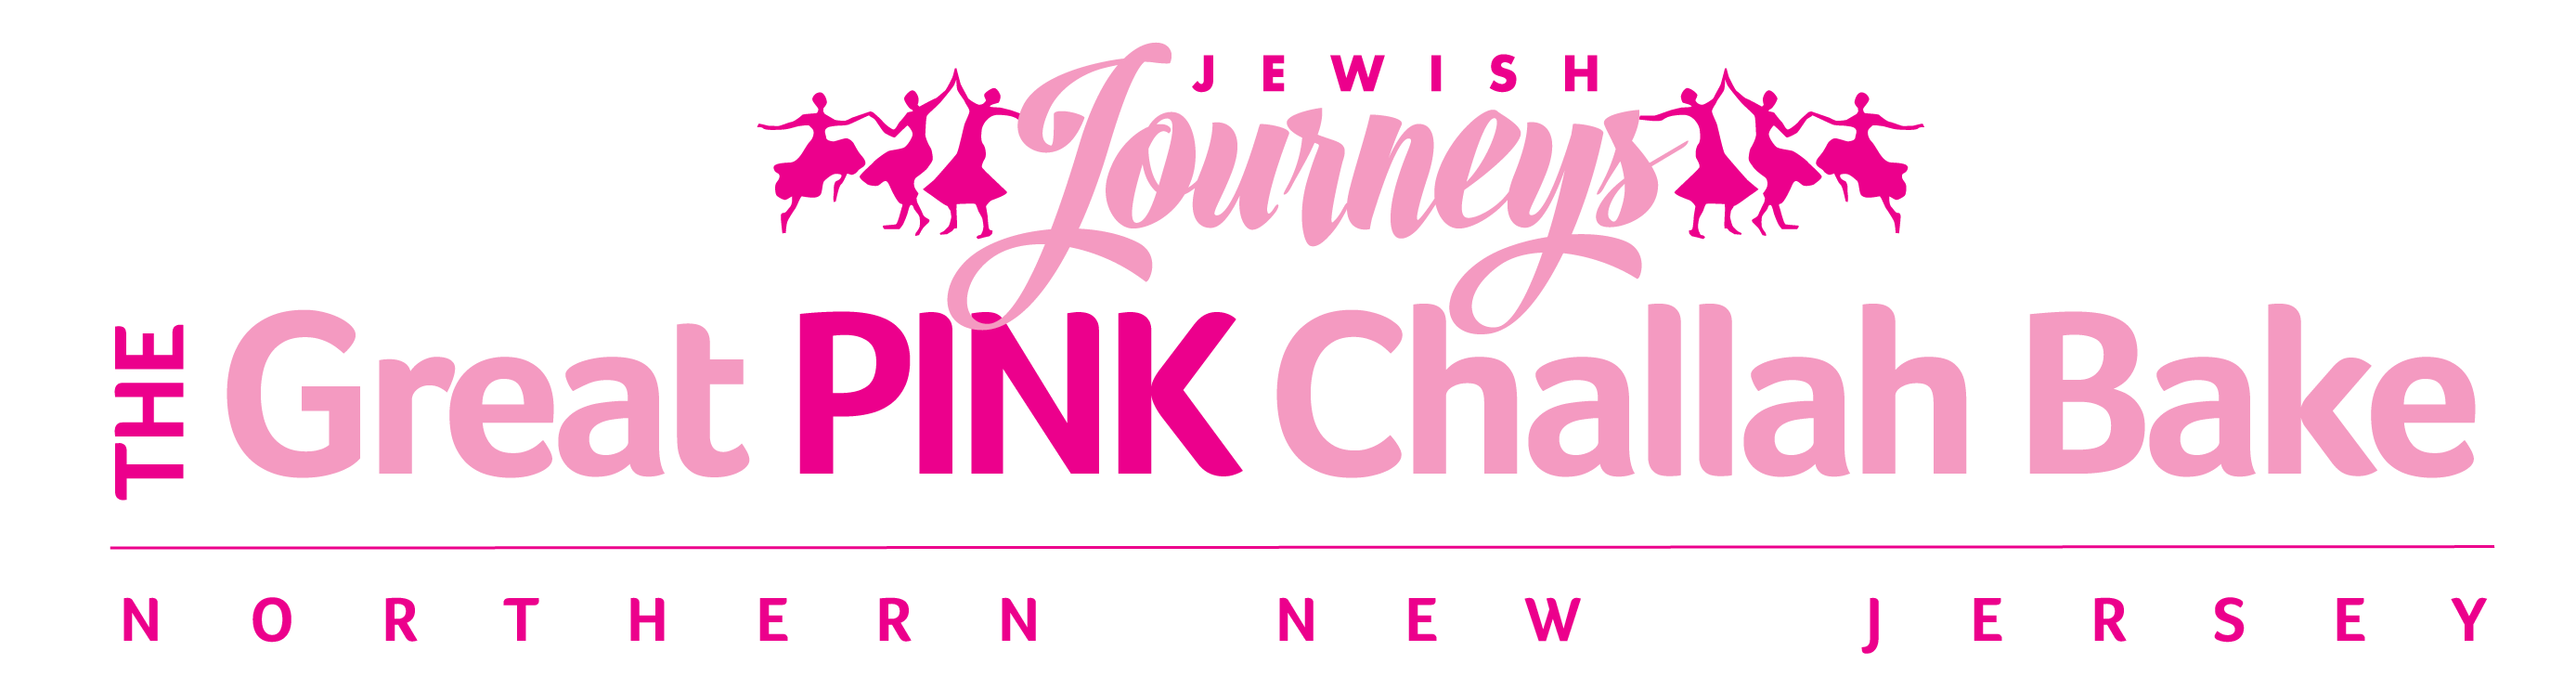 Tickets for Jewish Journeys Great PINK Challah Bake General Registration in Passaic from ShowClix